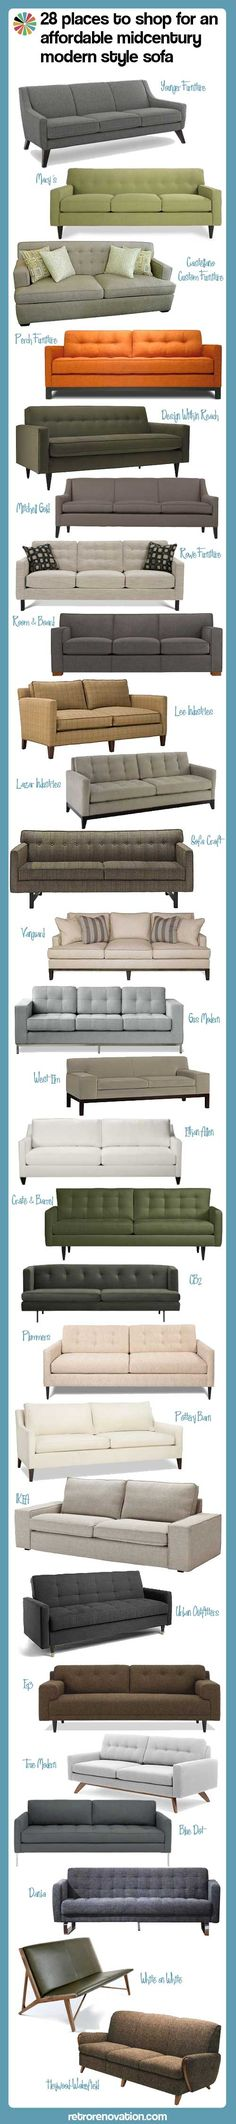 28 places to shop for an affordable midcentury modern style sofa - I LOVE this style!!